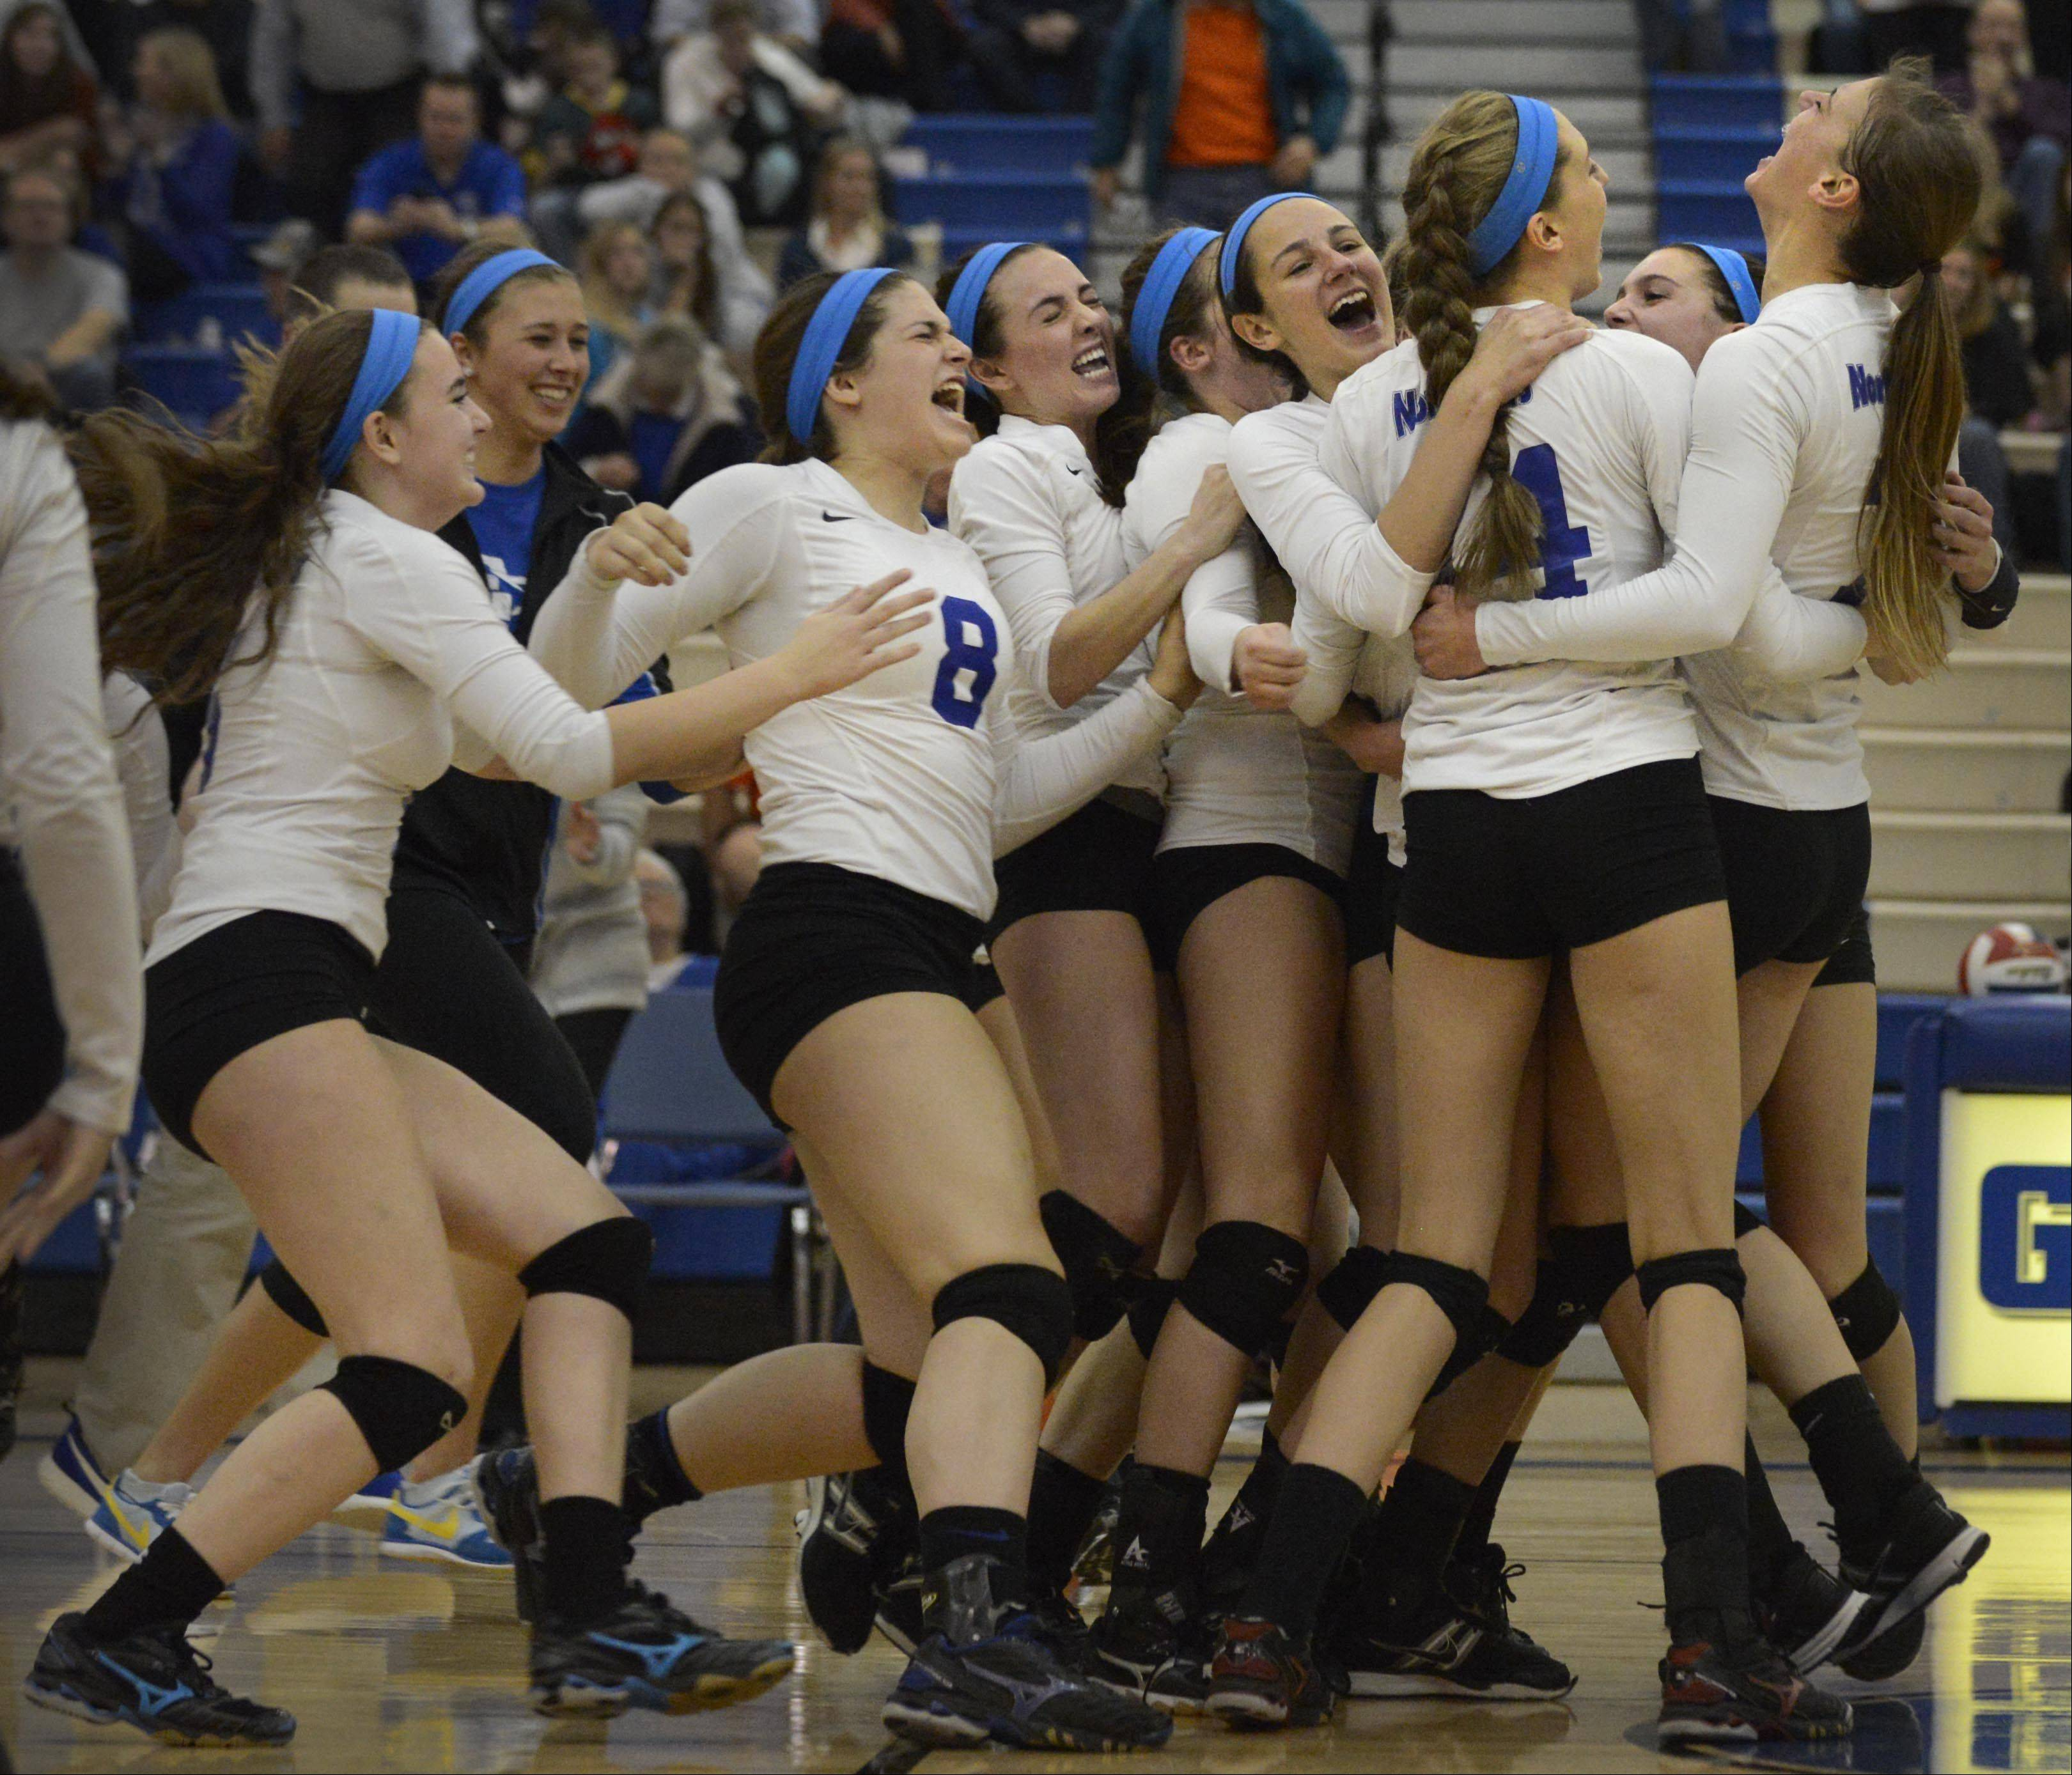 St. Charles North celebrates their sectional semifinal match win over St. Charles East Tuesday in Geneva.